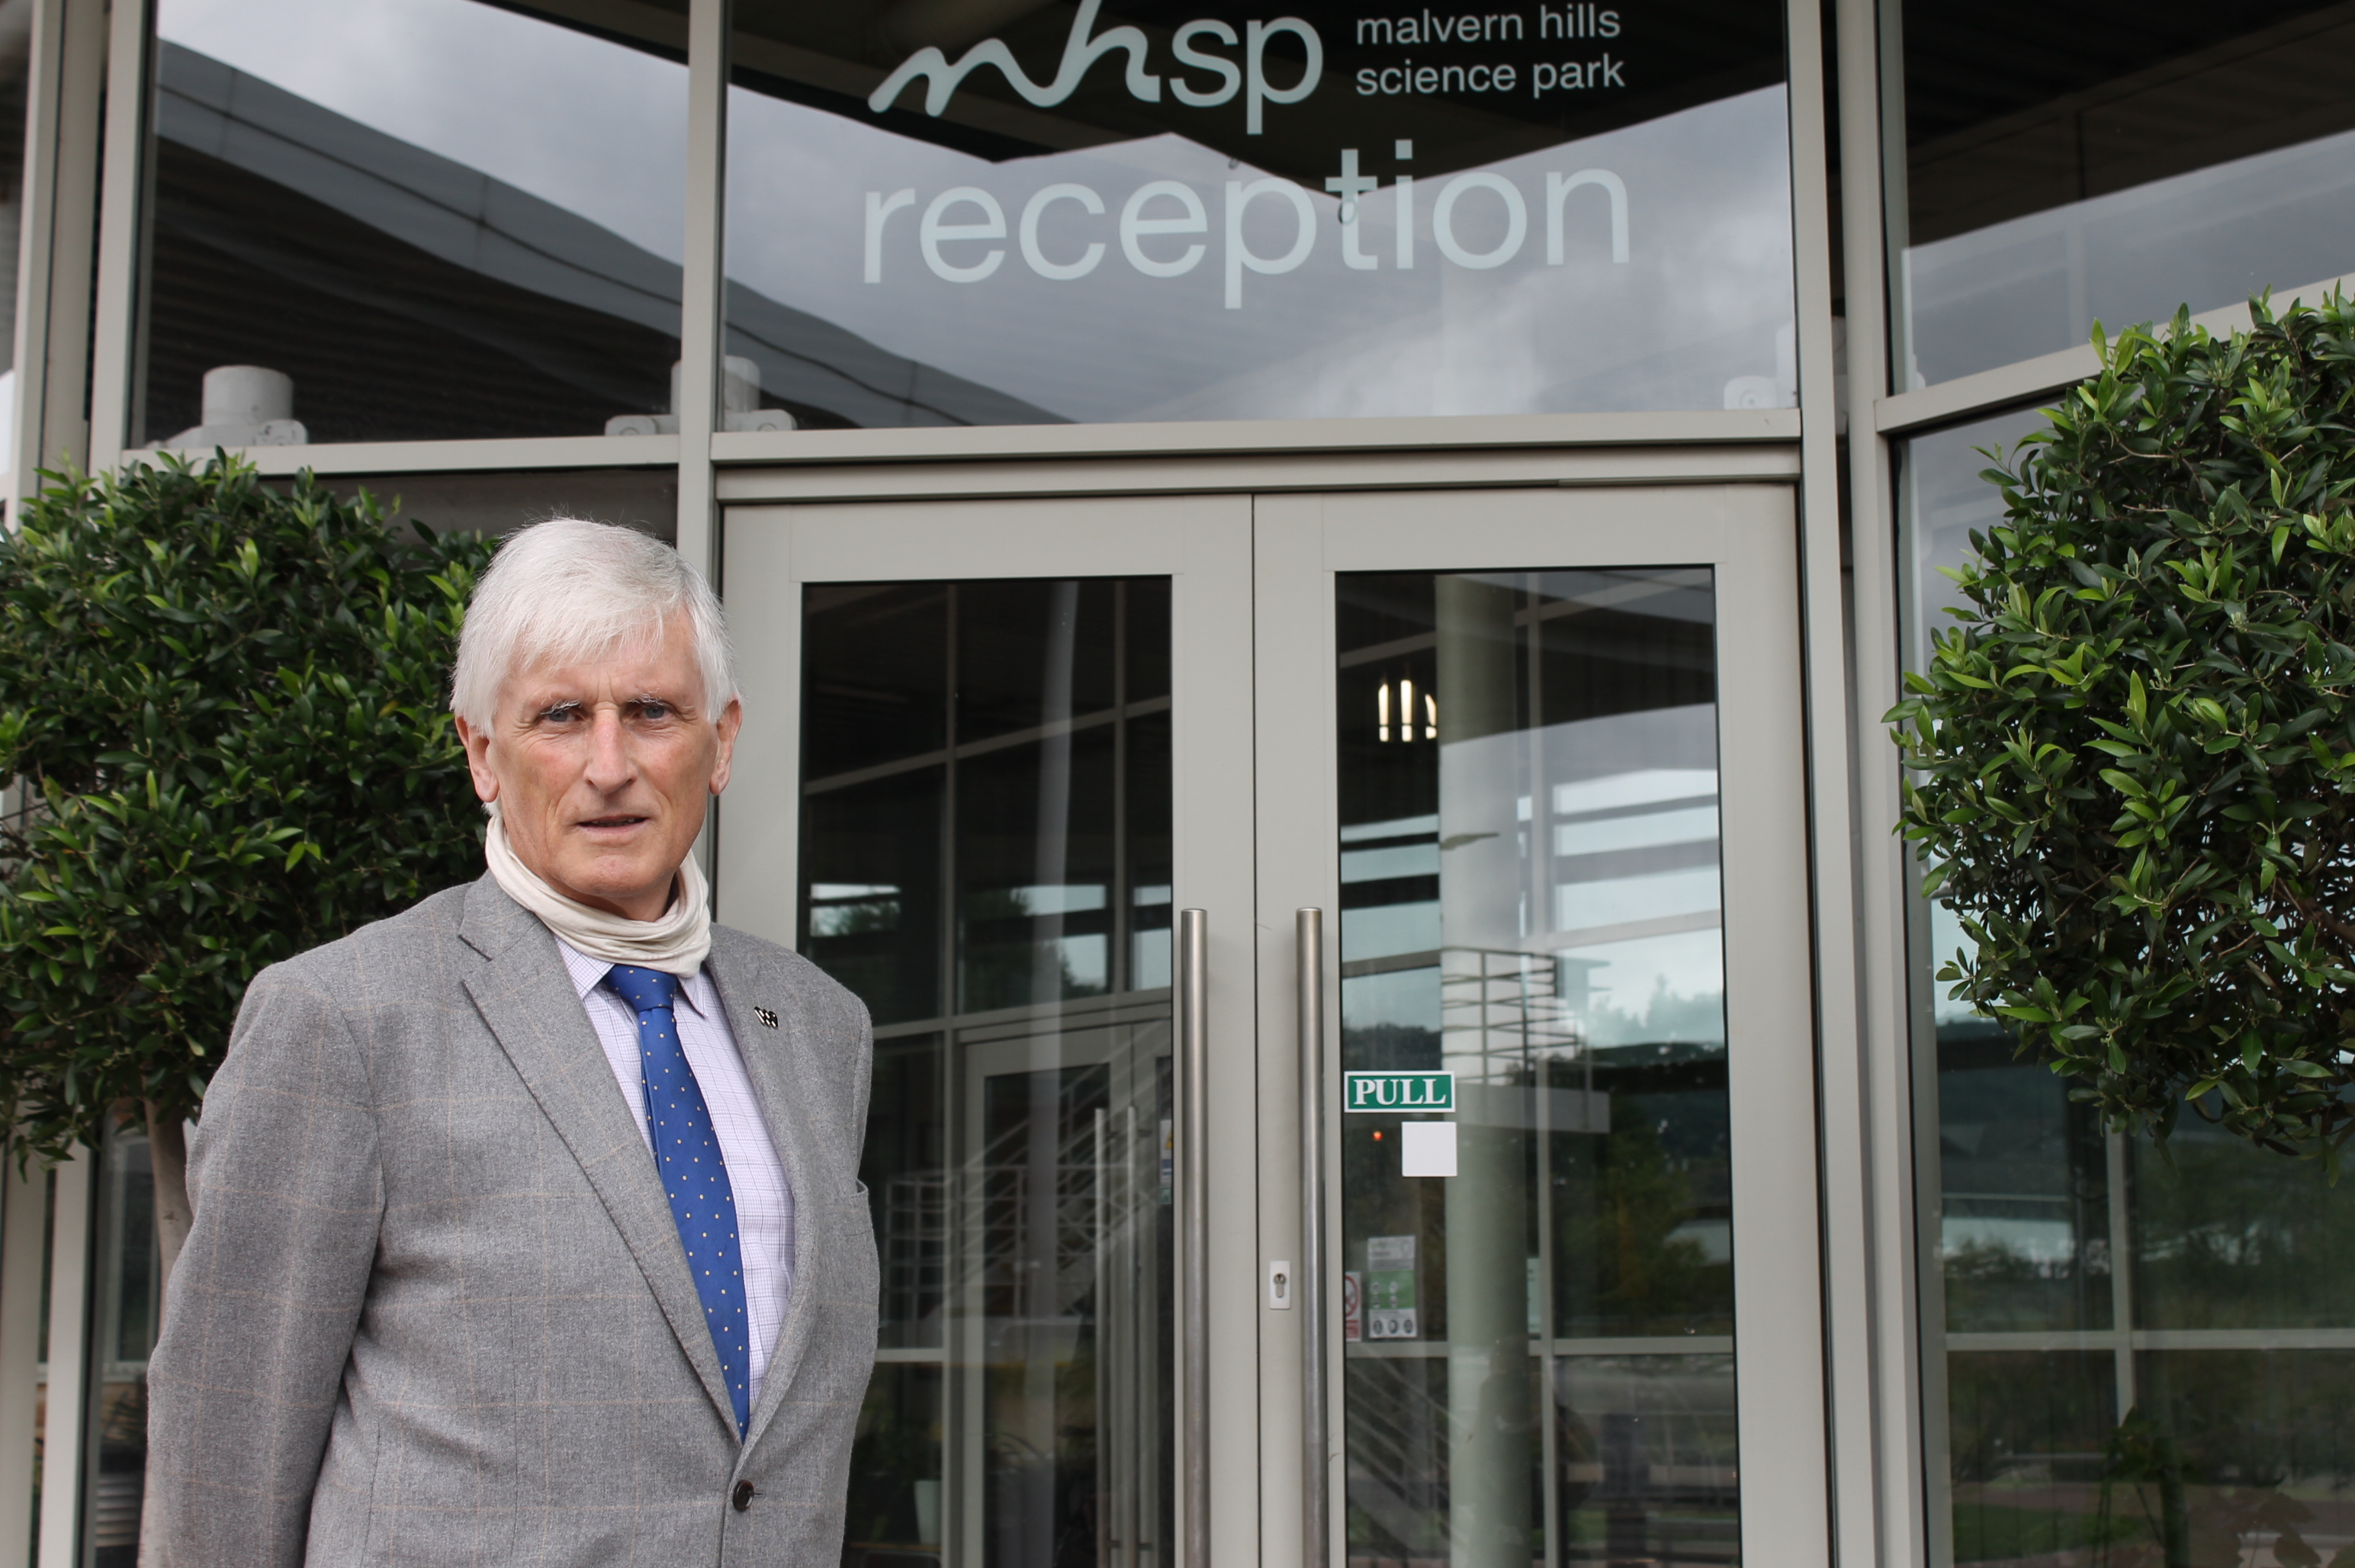 Councillor Ken Pollock standing outside Malvern Hills Science Park